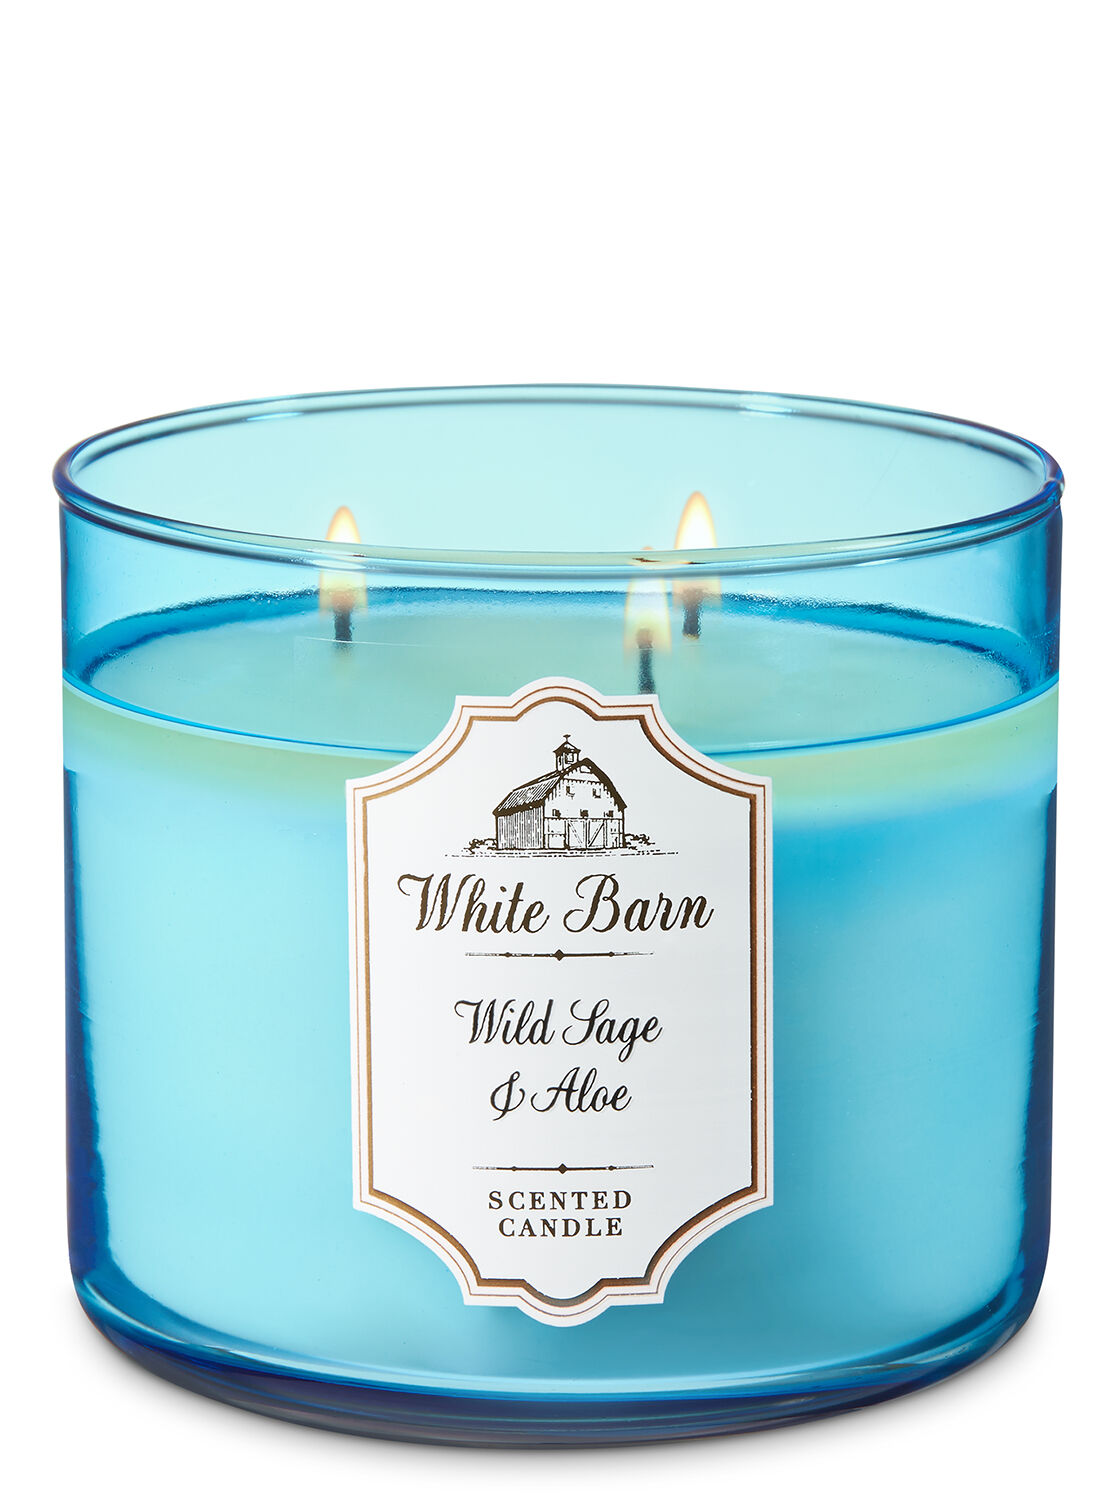 Bergamot Waters 3-Wick Candle - White Barn | Bath  for Blue Candle White Background  113cpg